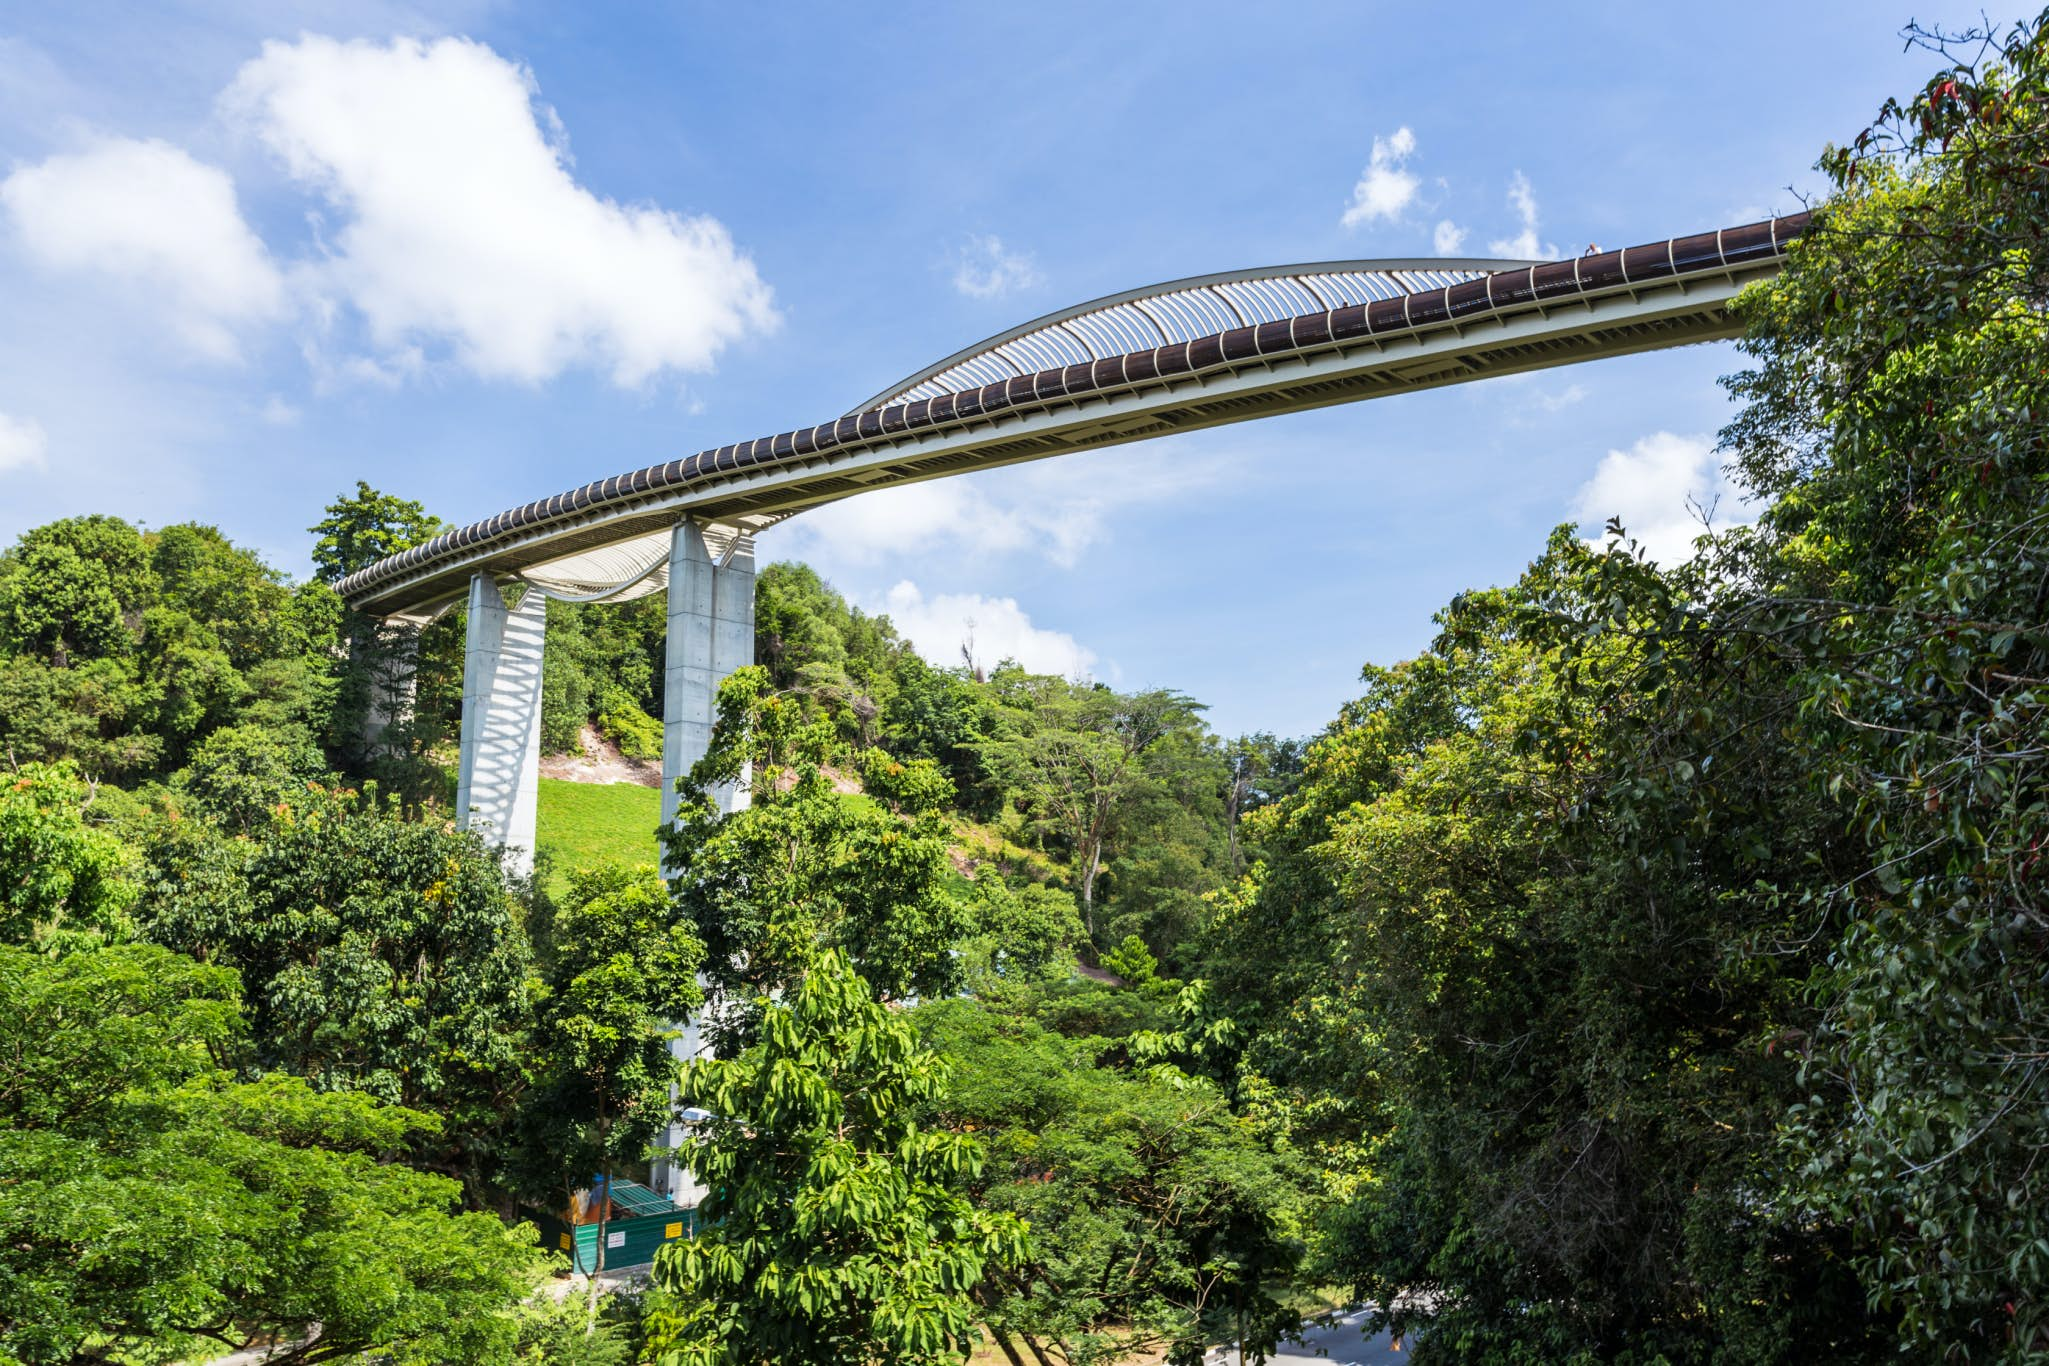 Southern Ridges | Singapore Attractions - Lonely Planet